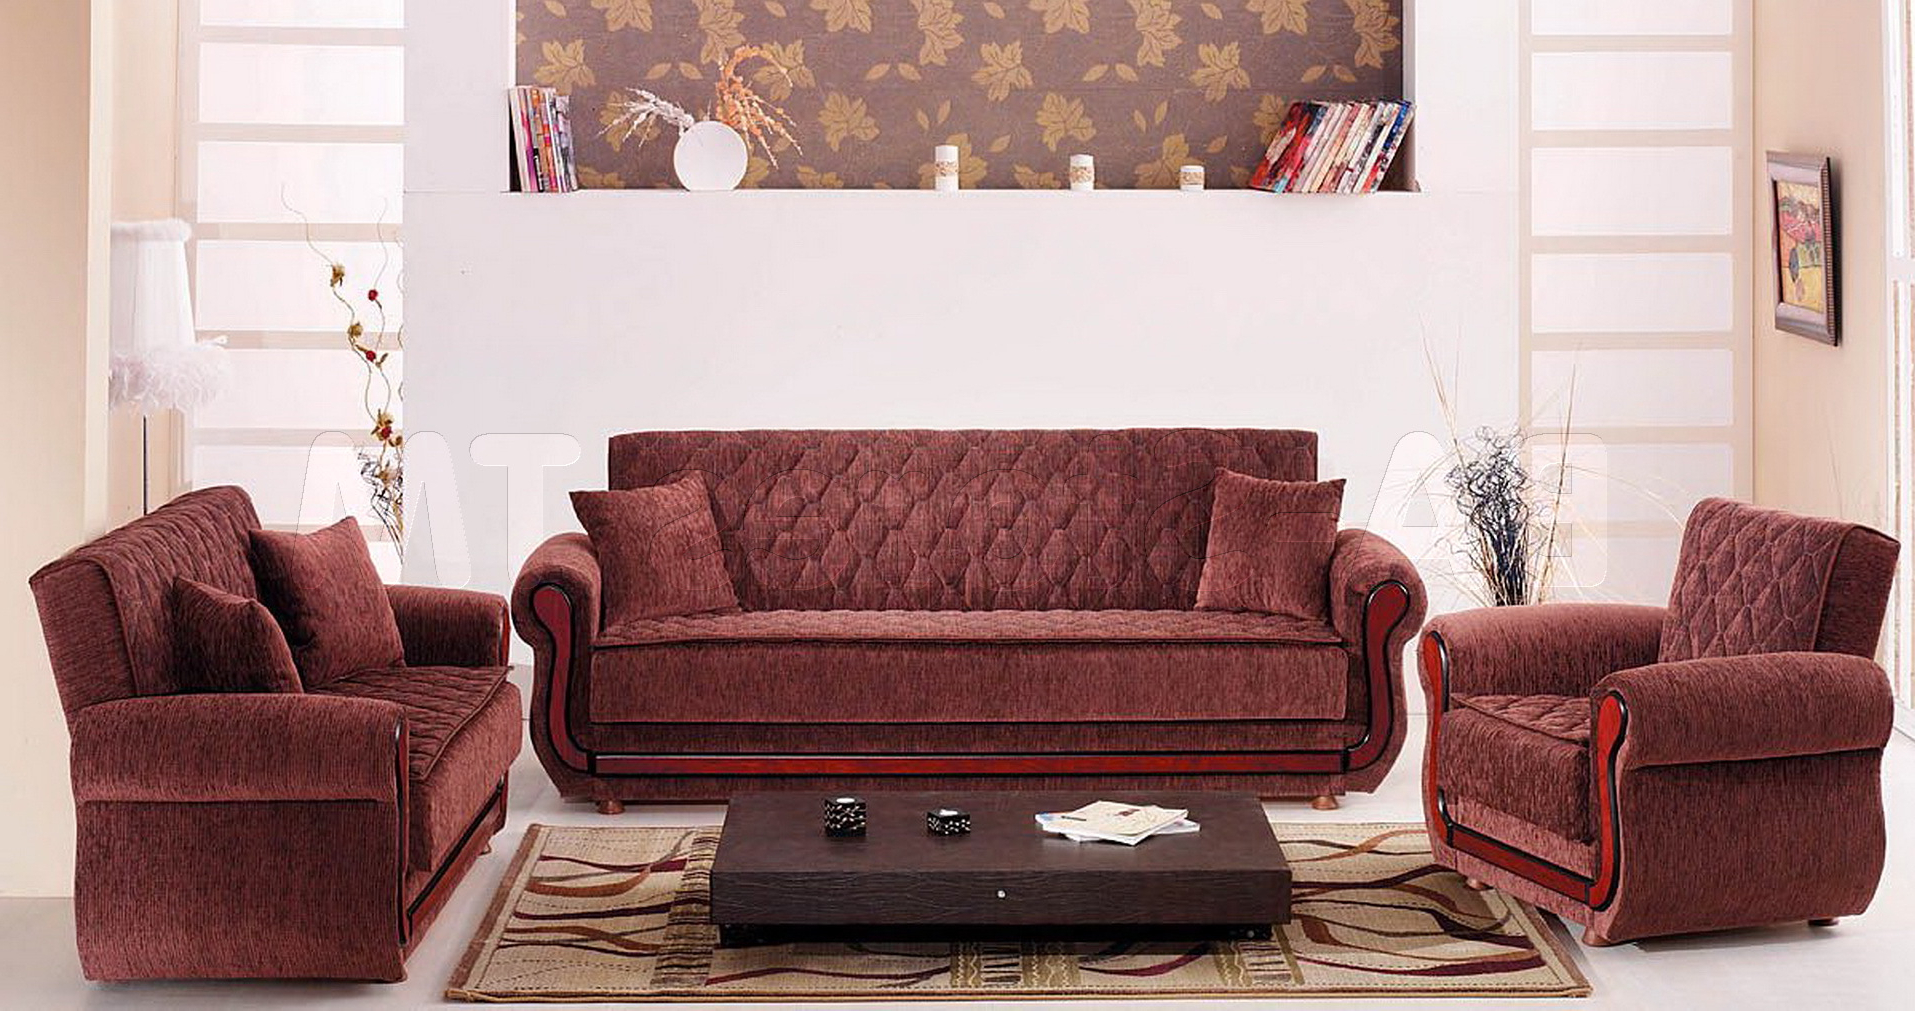 Sunrise Sofa Loveseat Chair Set Sets With Chairs Living Room Sofa With Latest Sofa Loveseat And Chair Set (View 16 of 20)